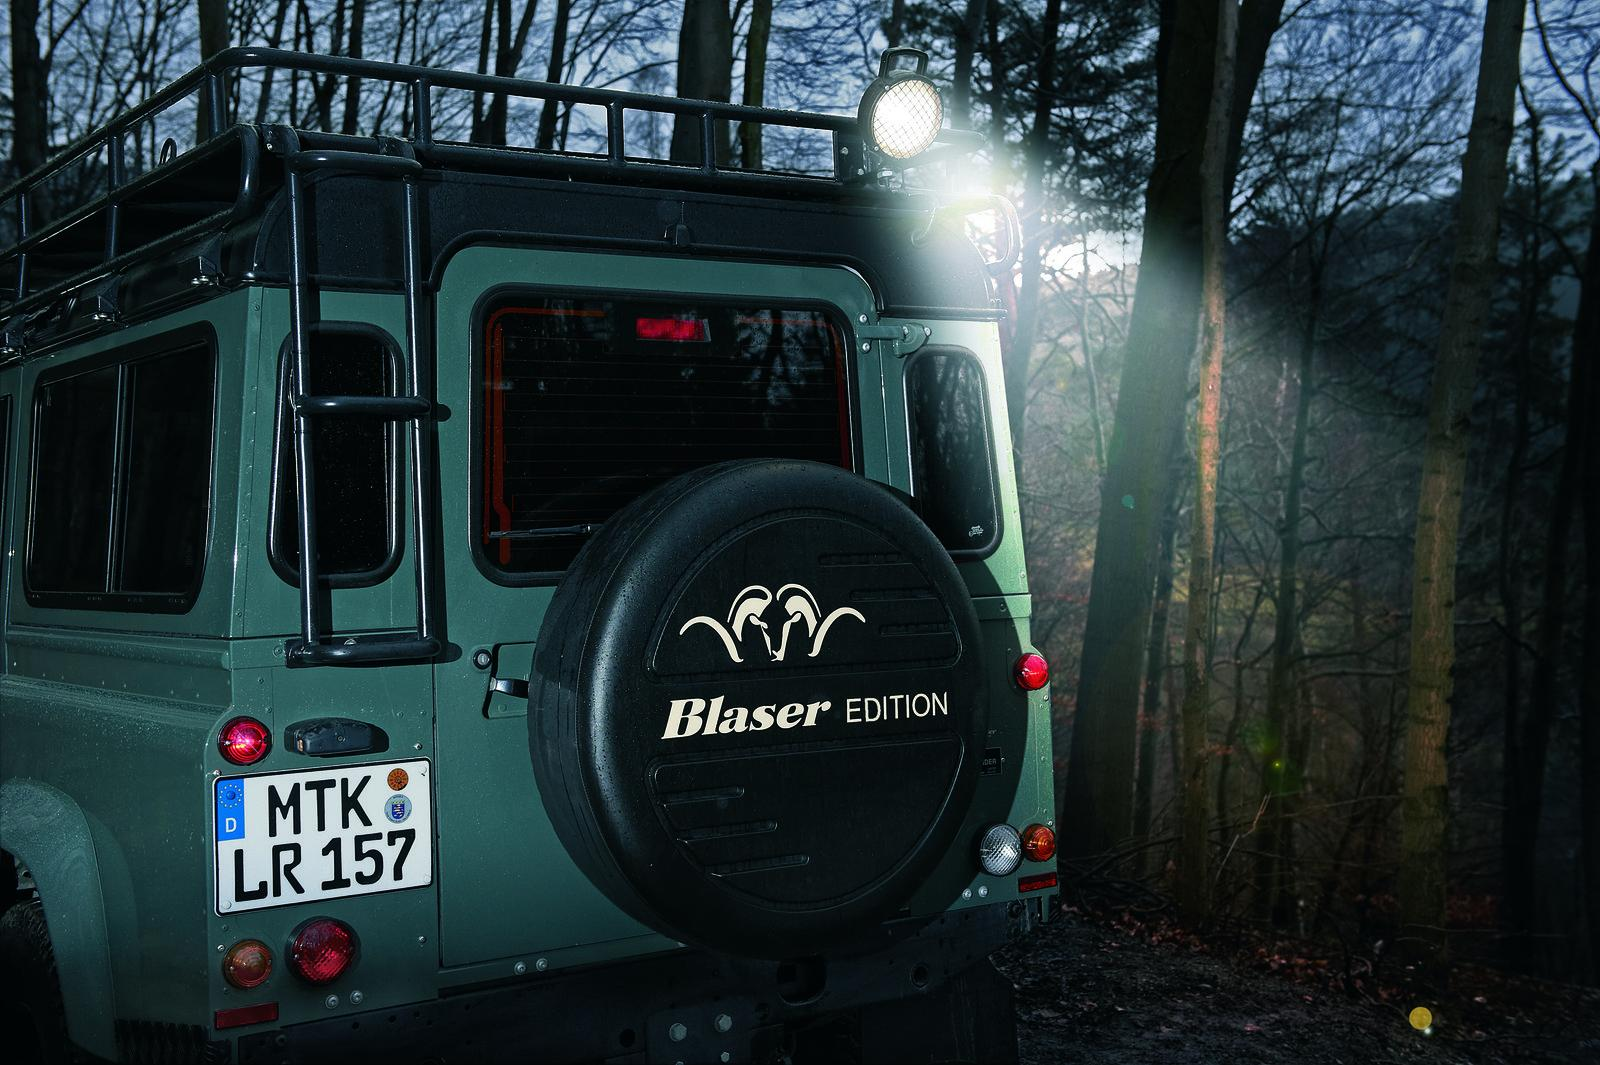 2012 Land Rover Defender Blaser Edition 4 2012 Land Rover Defender Blaser Edition revealed